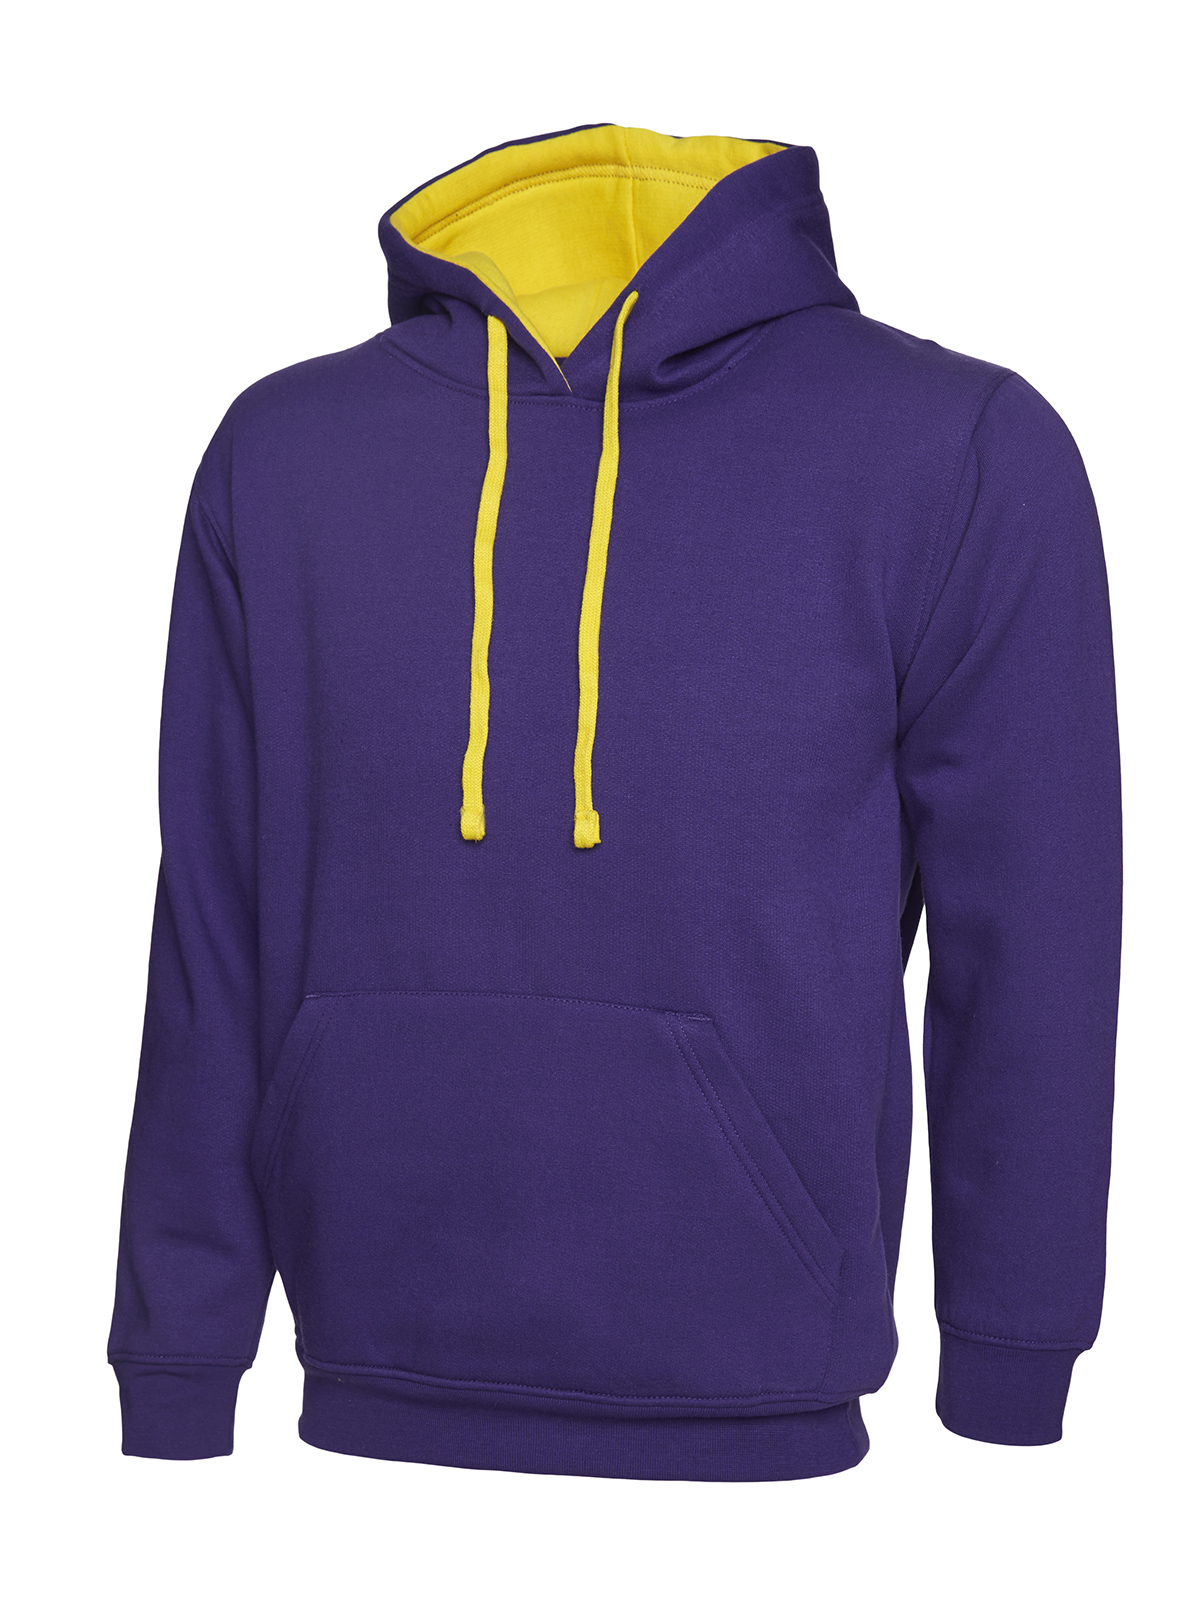 UNEEK UC507 CONTRAST HOODED SWEATSHIRT